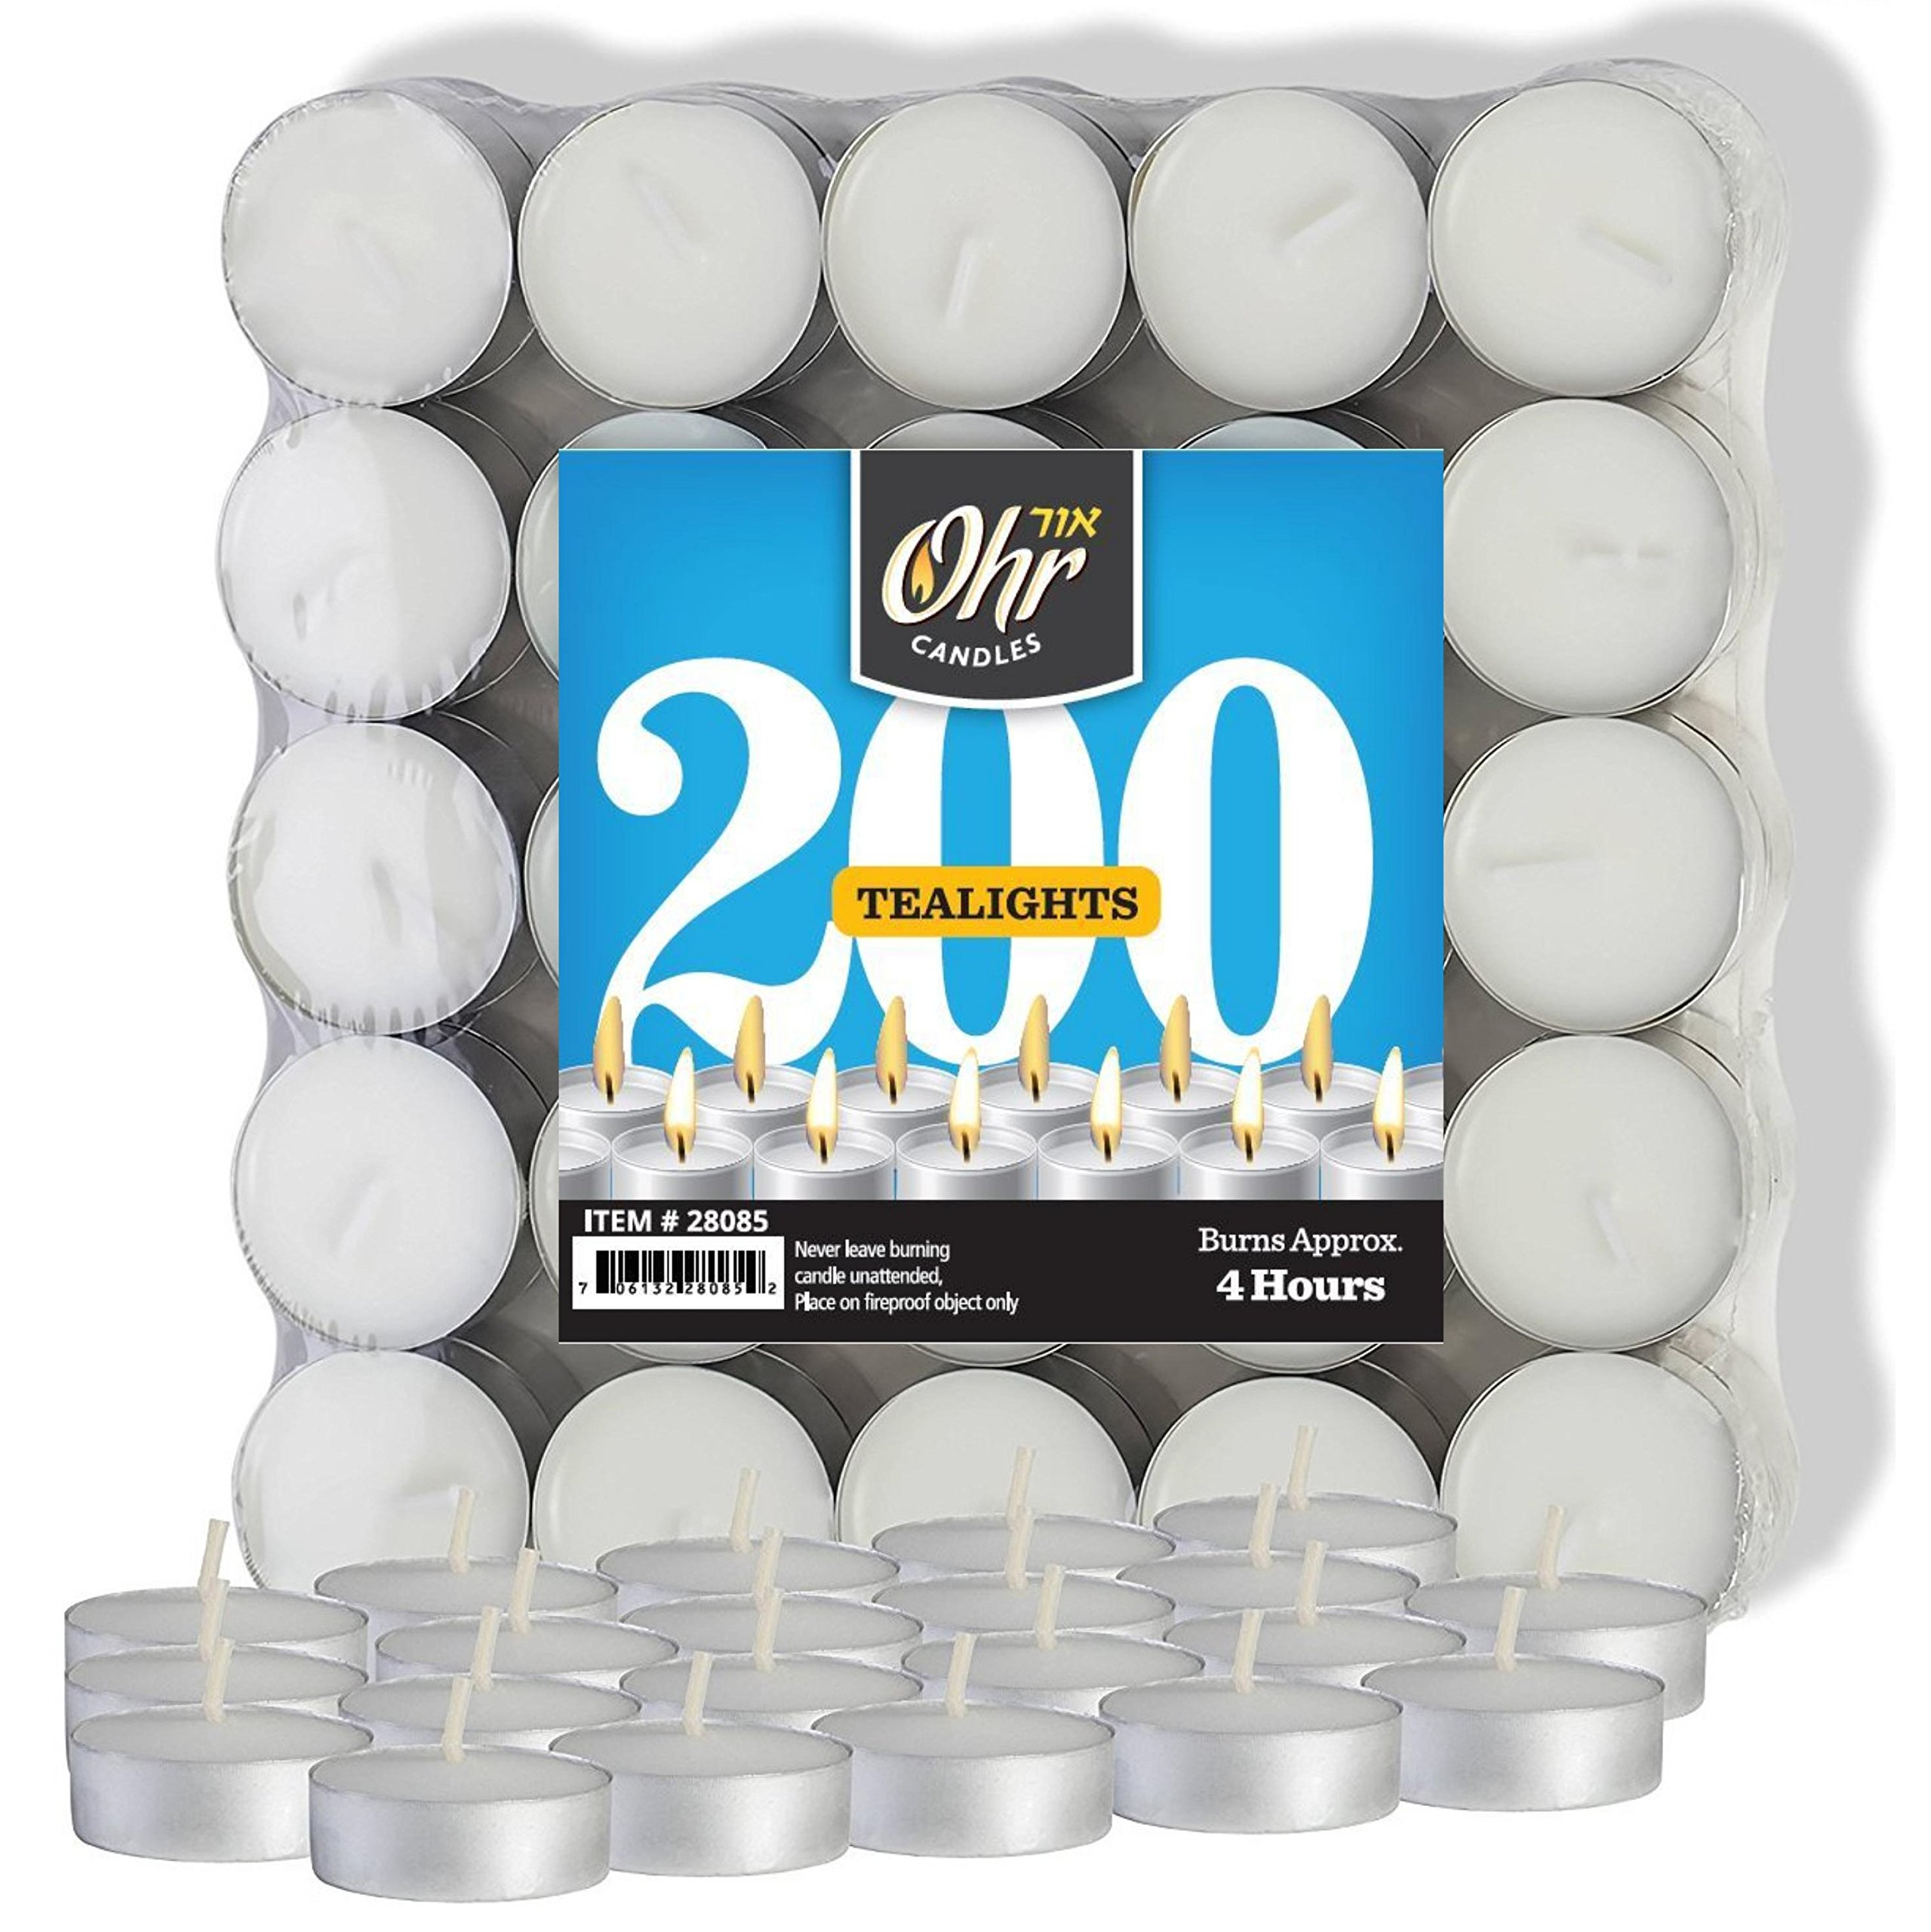 Ohr Tea Light Candles - 200 Bulk Pack - White Unscented Travel, Centerpiece, Decorative Candle - 4 Hour Burn Time - Pressed Wax - By by Ohr